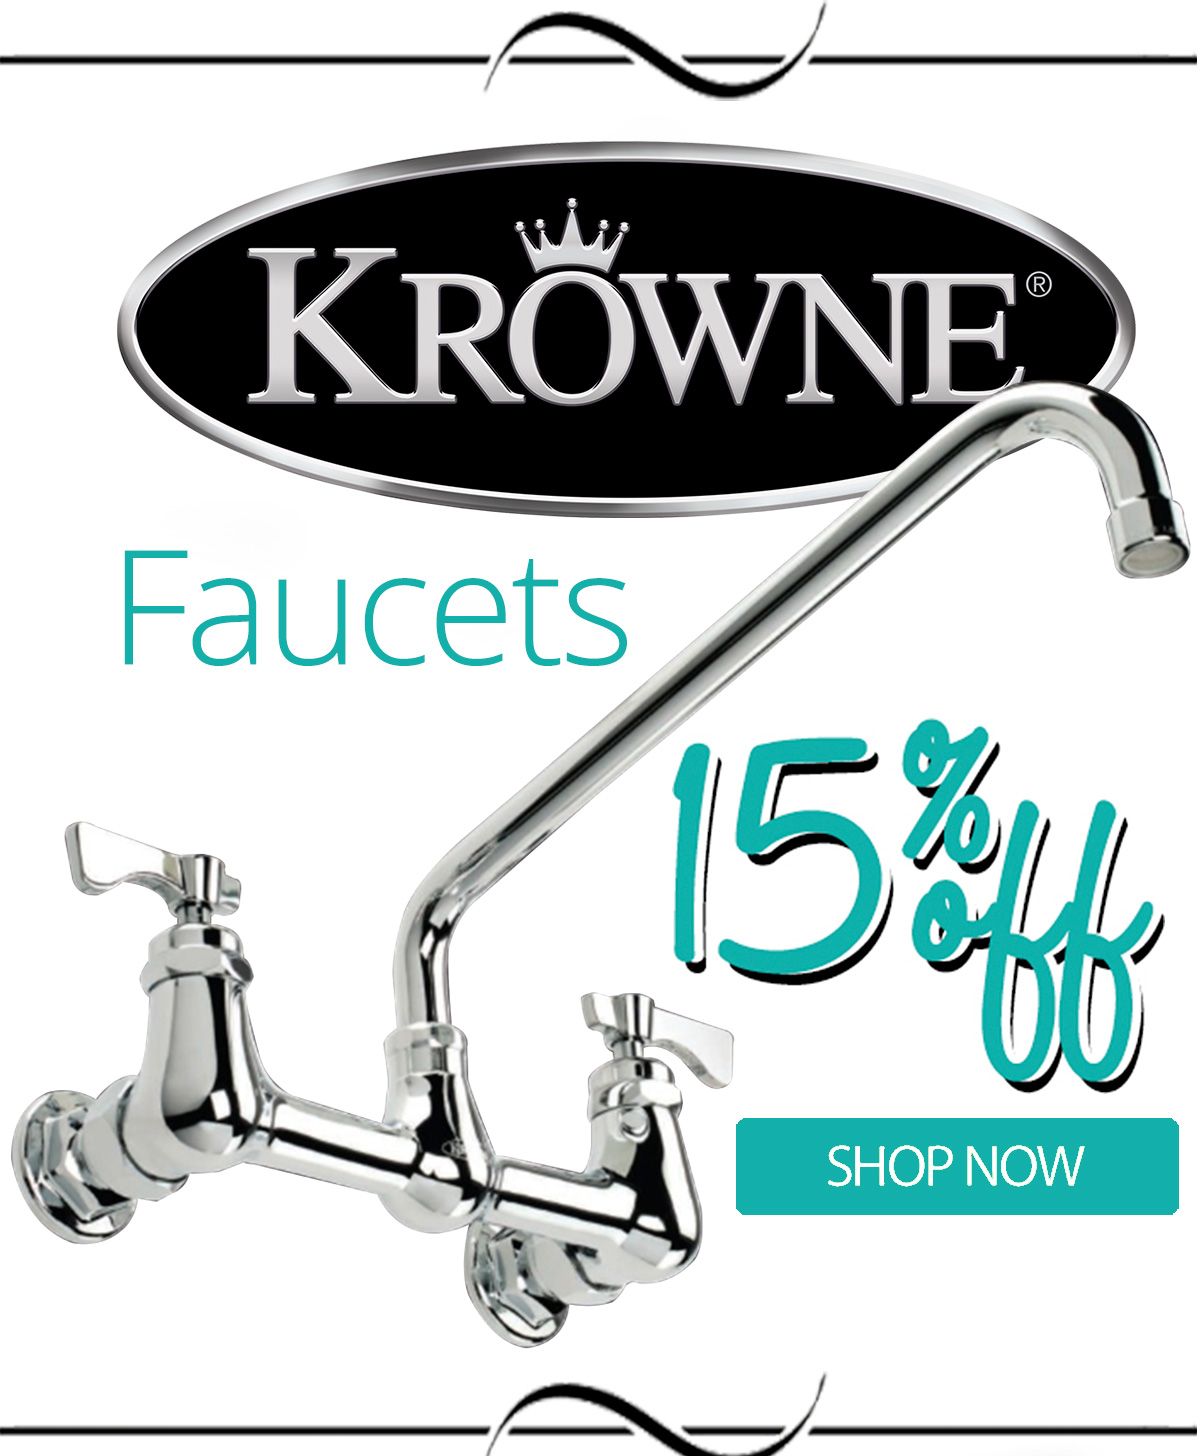 Krowne Faucets are now 15% Off! Shop before the sale is over!